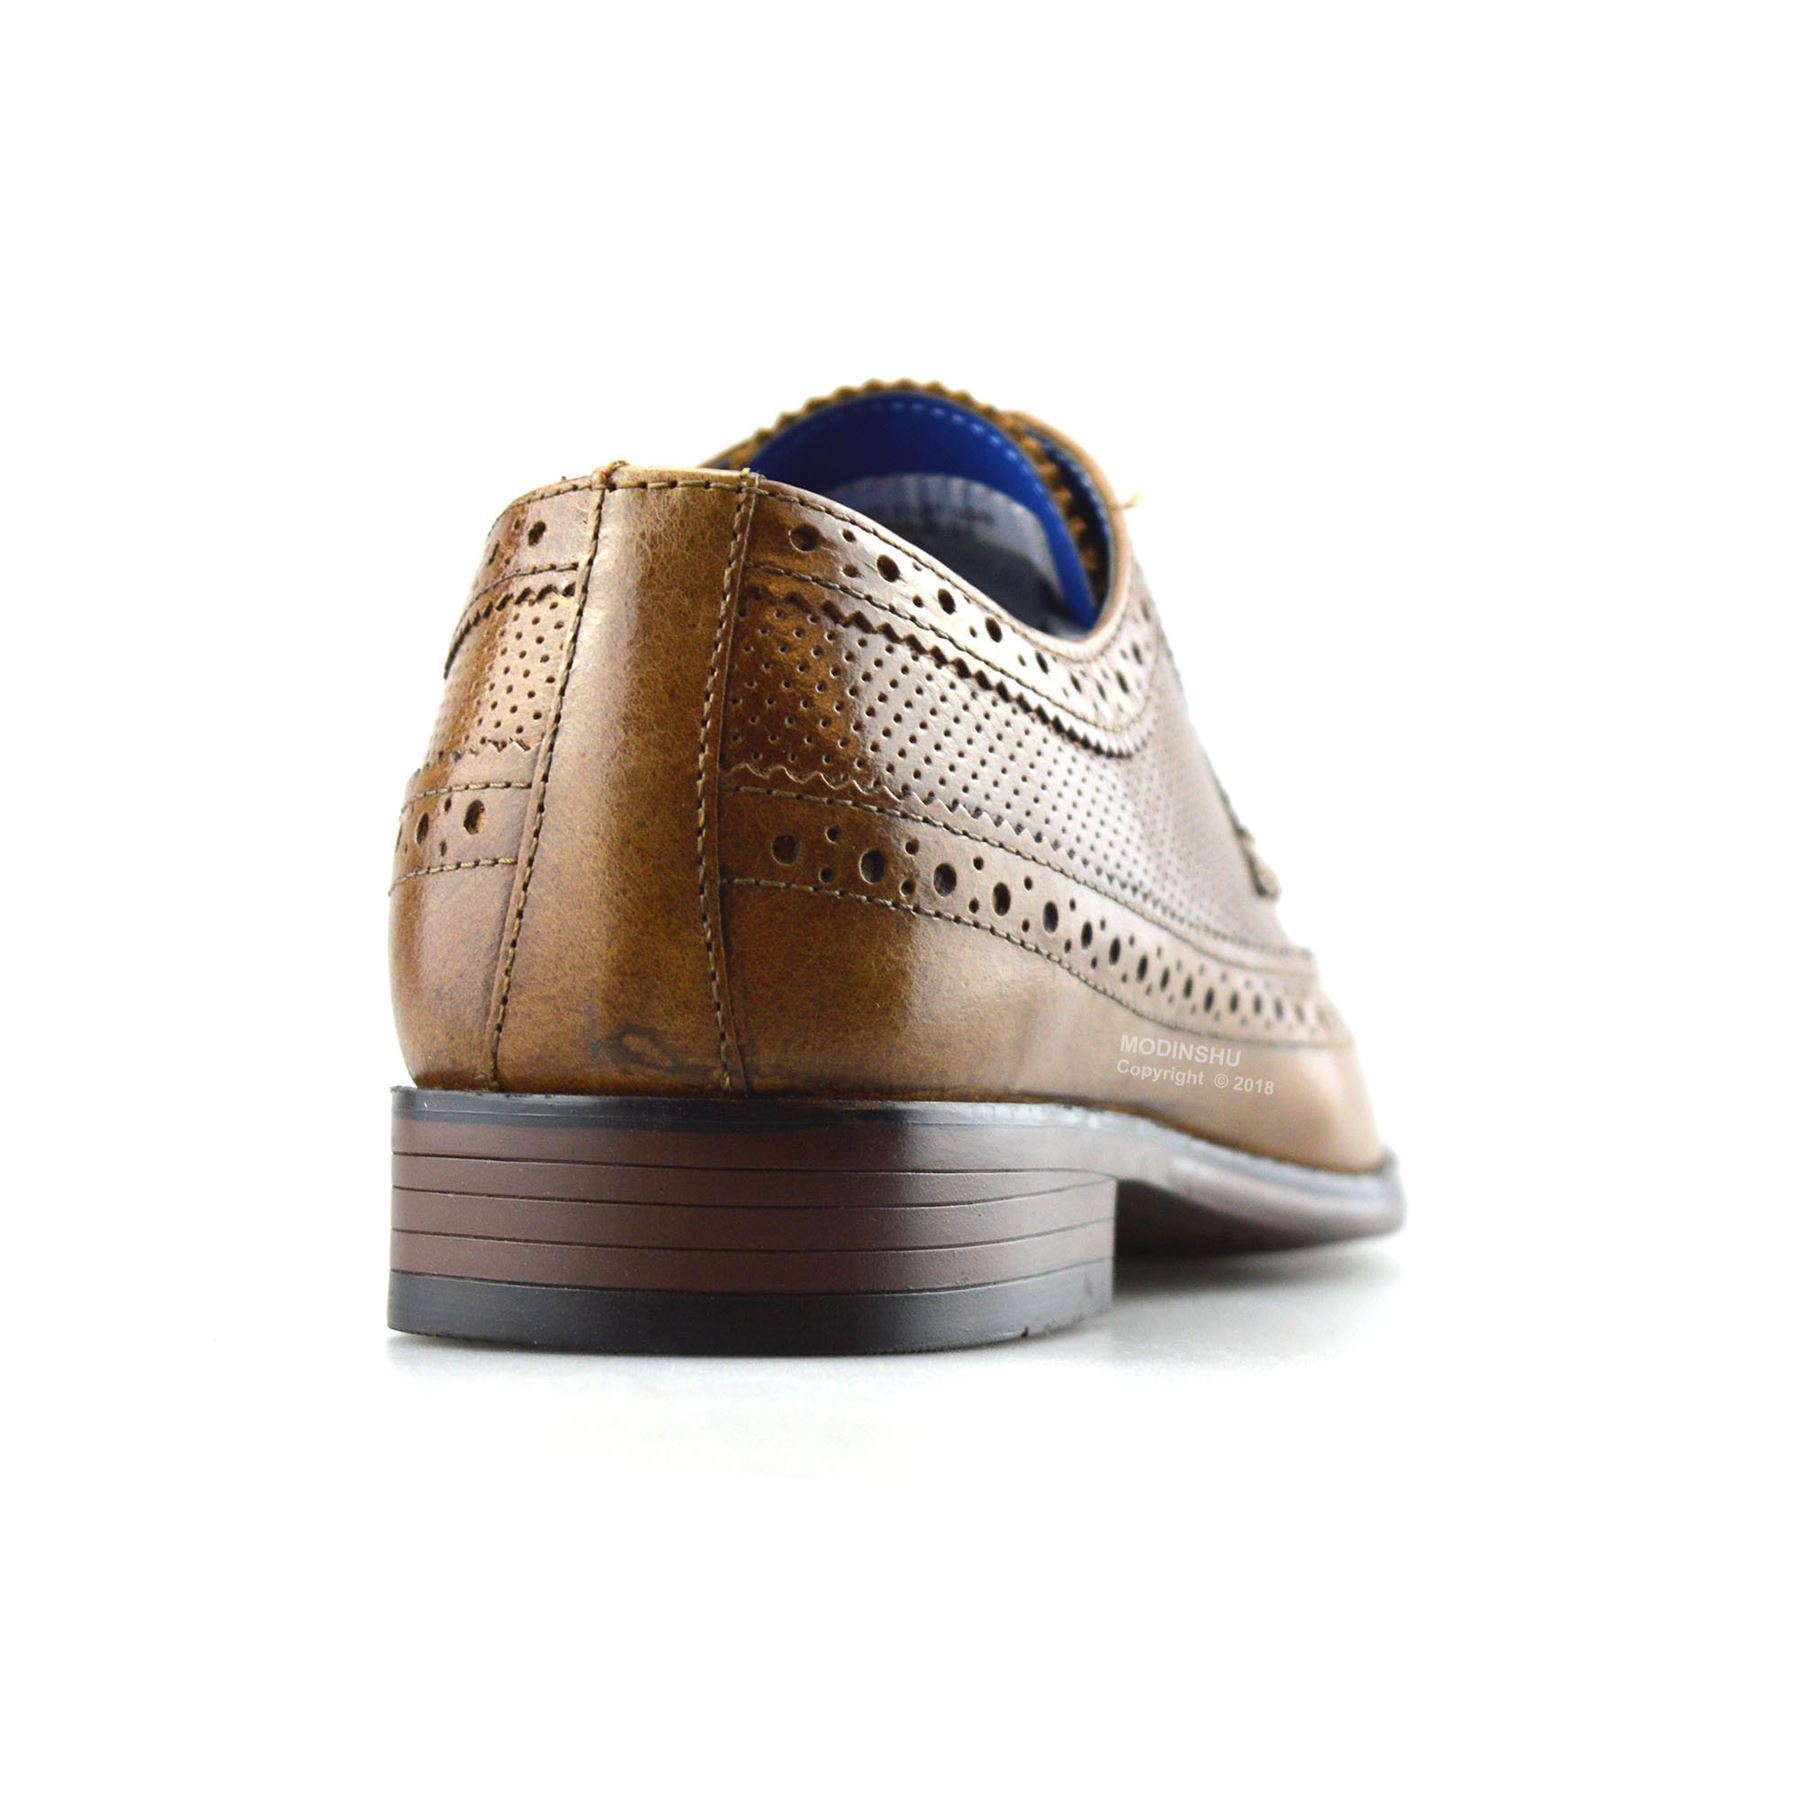 Mens-Leather-Brogues-Smart-Casual-Formal-Office-Lace-Up-Oxford-Brogue-Shoes-Size thumbnail 14